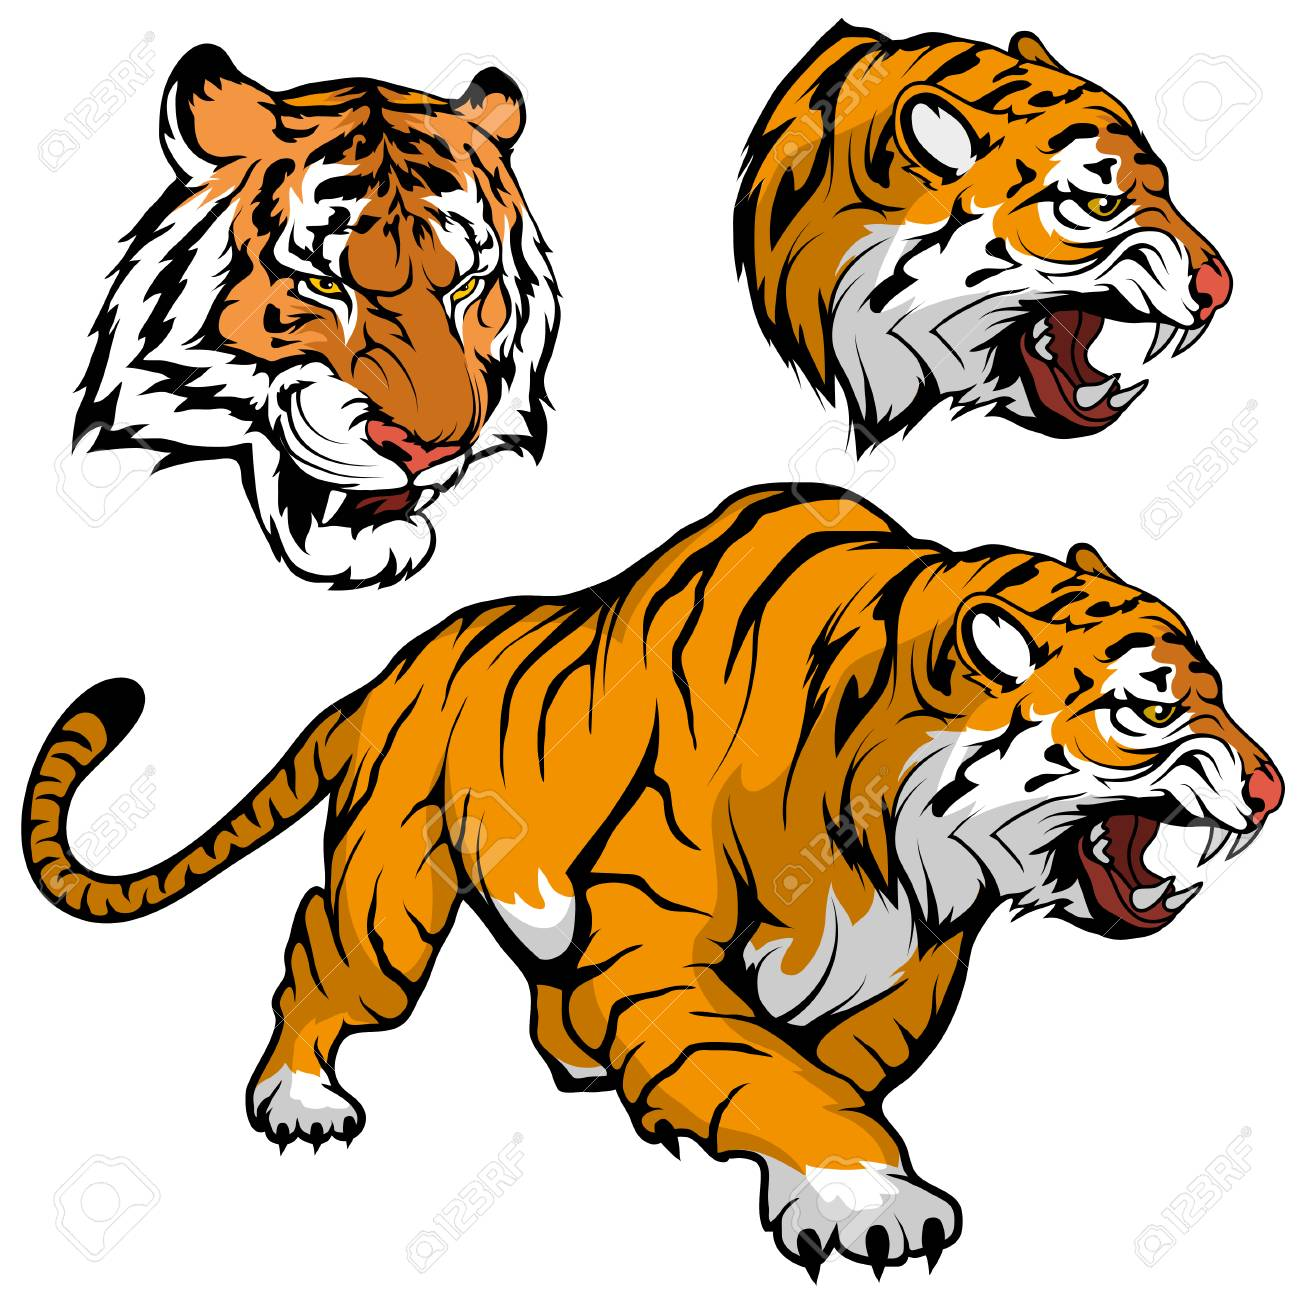 Bengal Tiger Set Suitable As Team Mascot Royal Tiger Drawing Royalty Free Cliparts Vectors And Stock Illustration Image 124802725